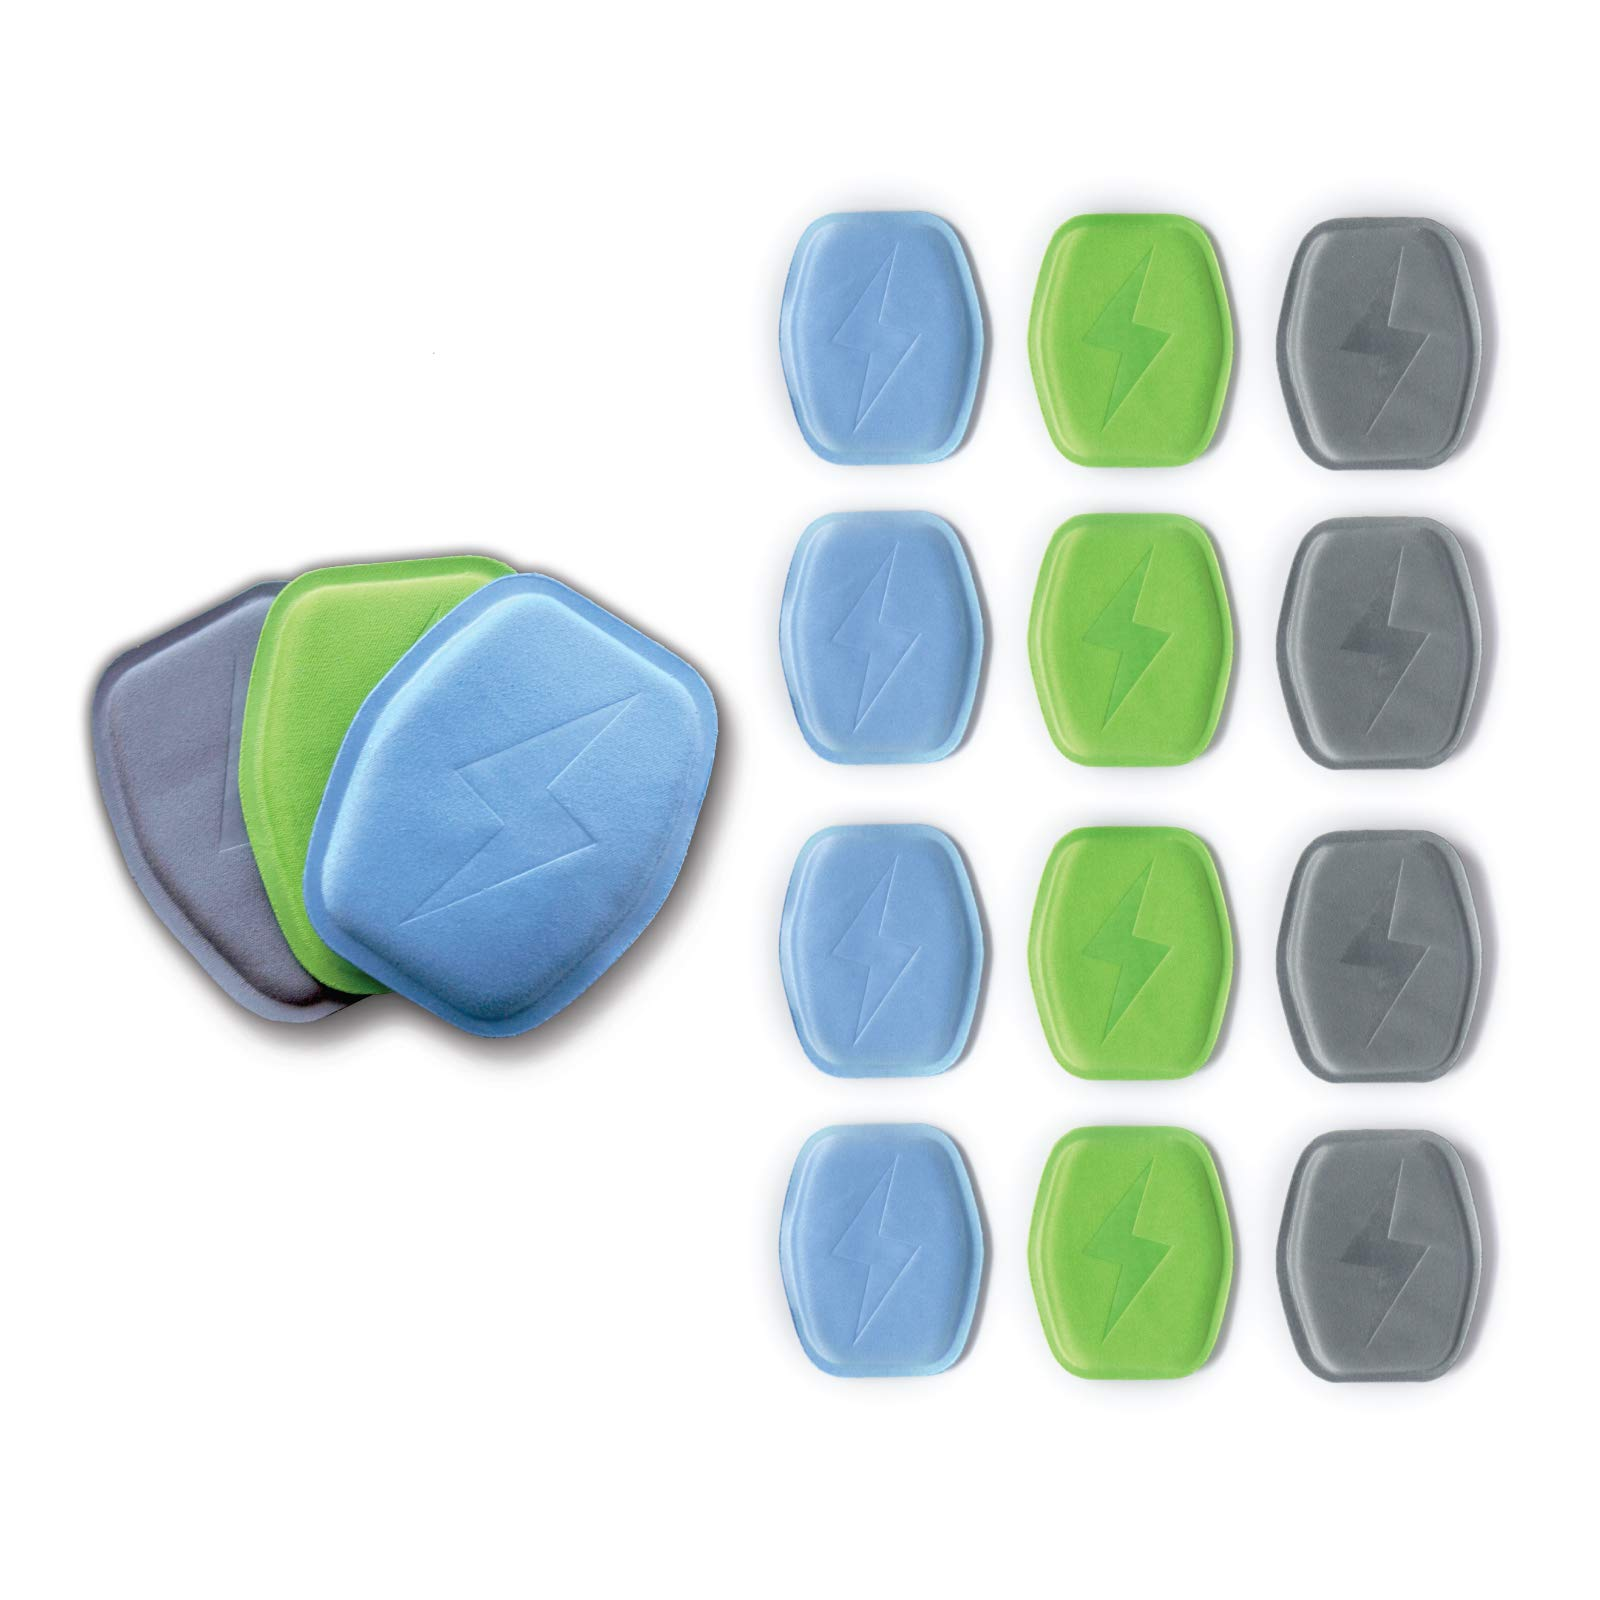 PhoneSoap Cleaning Pads | Microfiber Cleaning Cloths for Smartphones, Tablets, Laptops, Cameras, and Much More! (12)